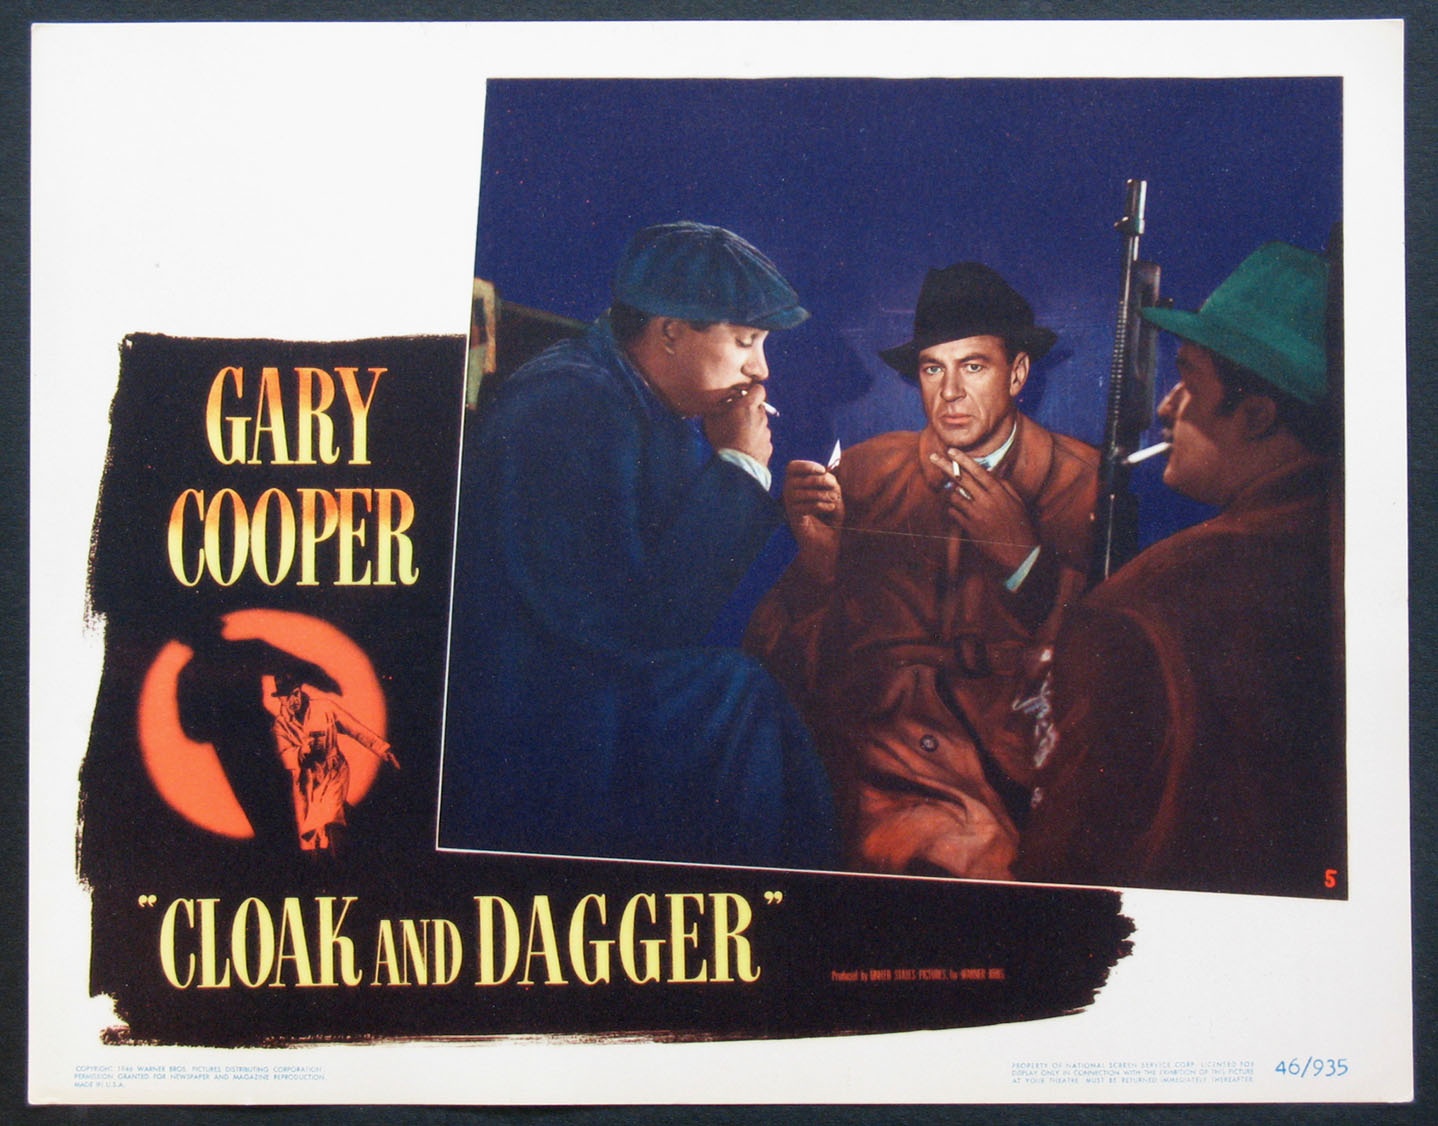 CLOAK AND DAGGER @ FilmPosters.com